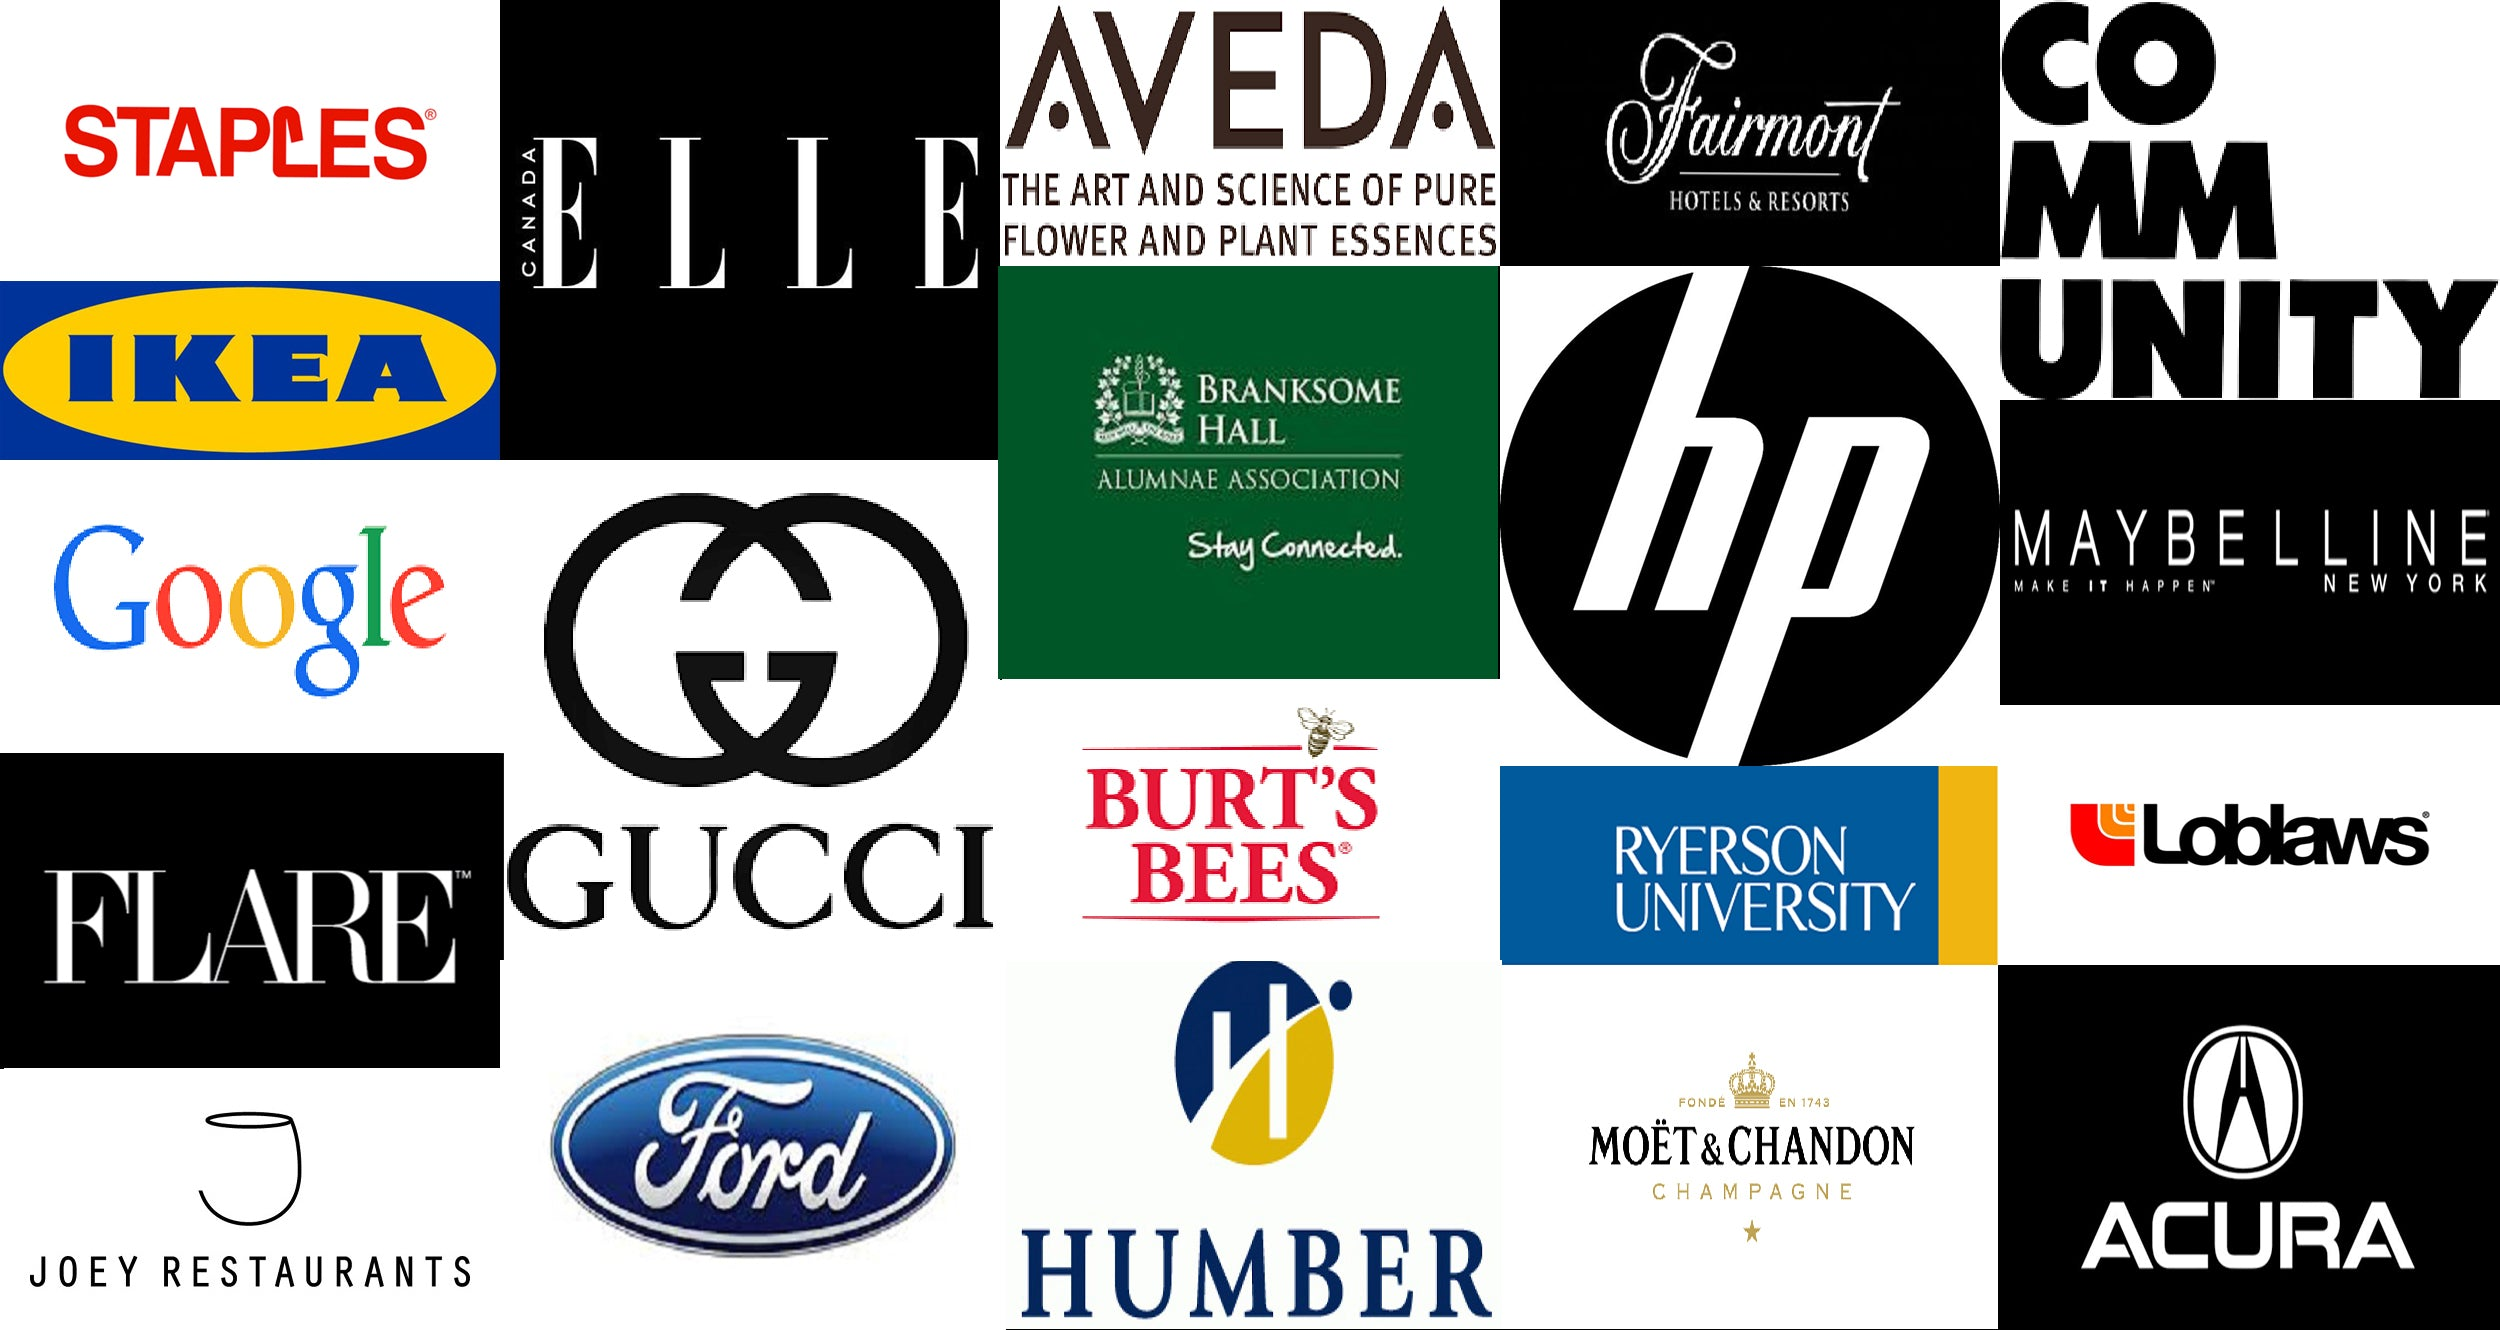 Arta Gallery Past Clients: Acura, Aveda, Branksome Hall Alumni Association, Burgundy, Burt's Bees, The Community, Elle Canada, Fairmont Hotel International, Flare Magazine, Ford, Google, Gucci, Humber College, HP, IKEA Canada, JOEY Restaurants, Loblaws, Maybeline, Moet, Ryerson University, Staples